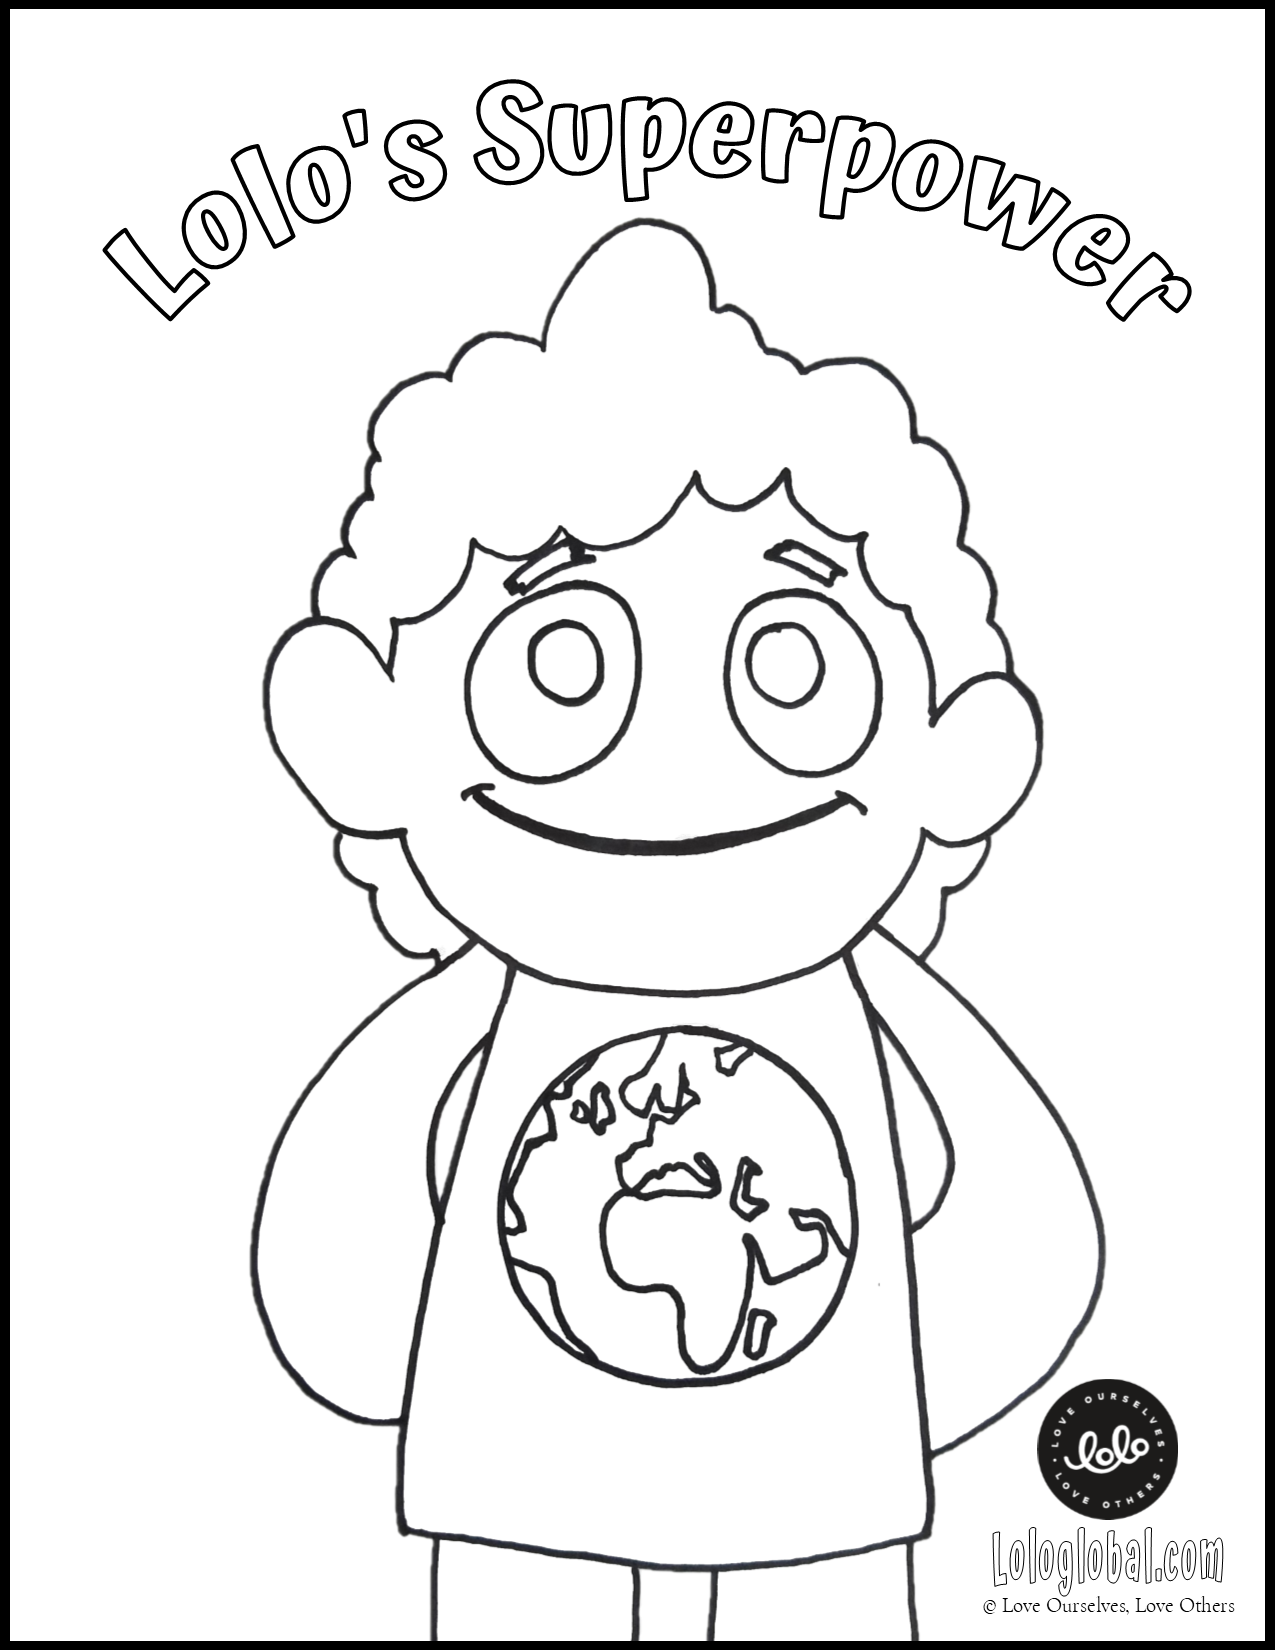 """""""Lolo's Superpower"""" Coloring Page (Preview)"""